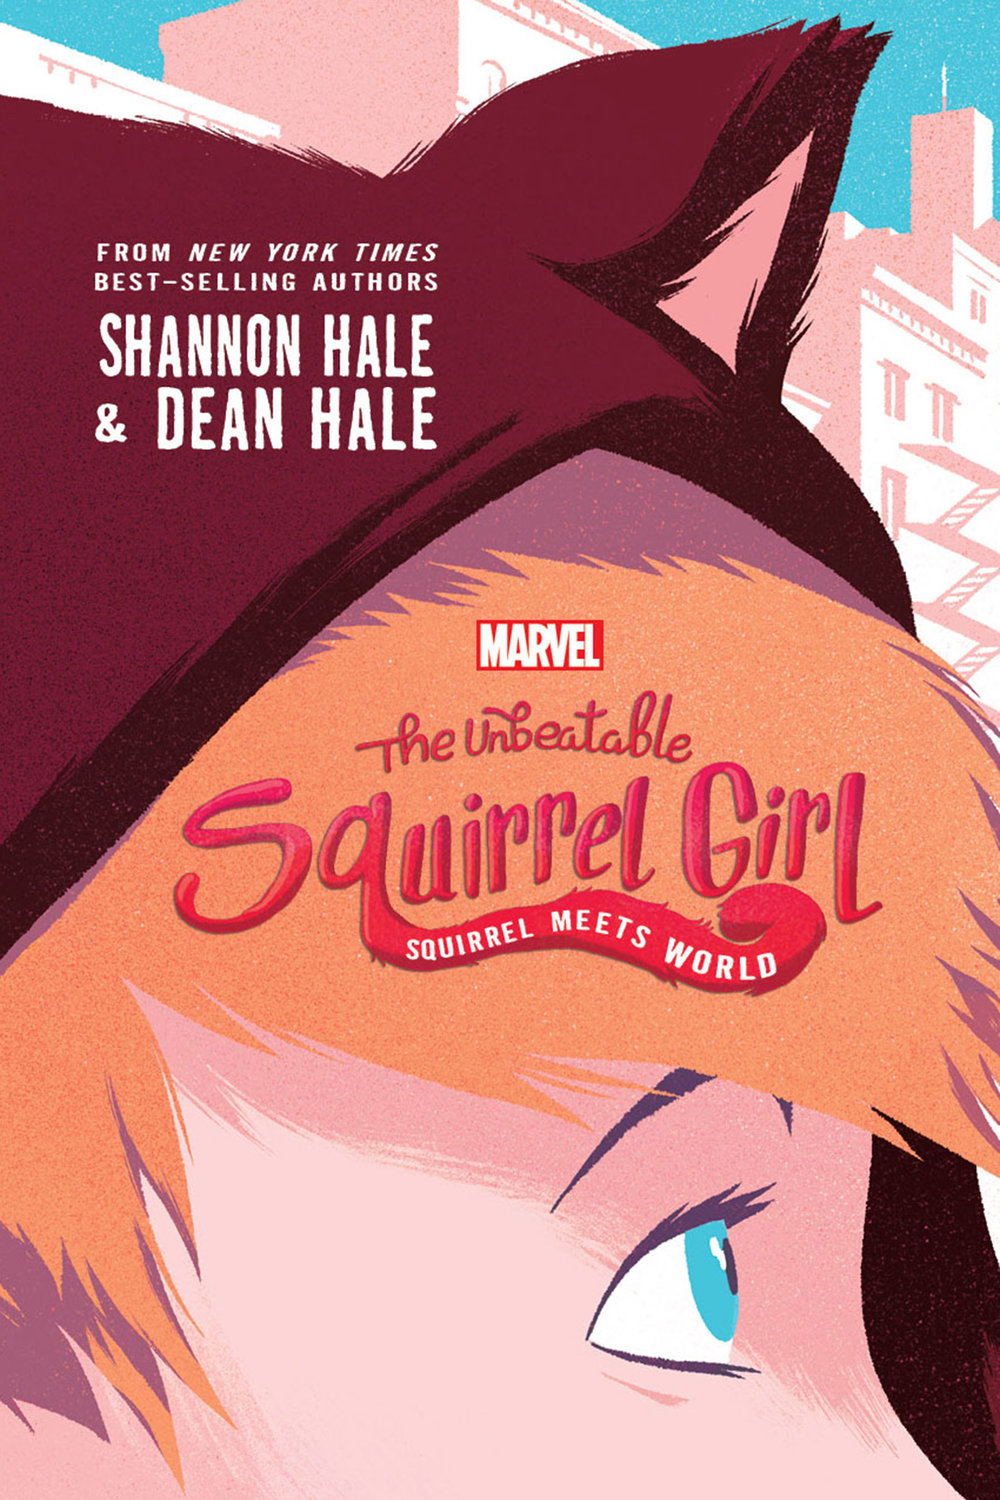 The Unbeatable Squirrel Girl: Squirrel Meets World, by Shannon Hale & Dean Hale